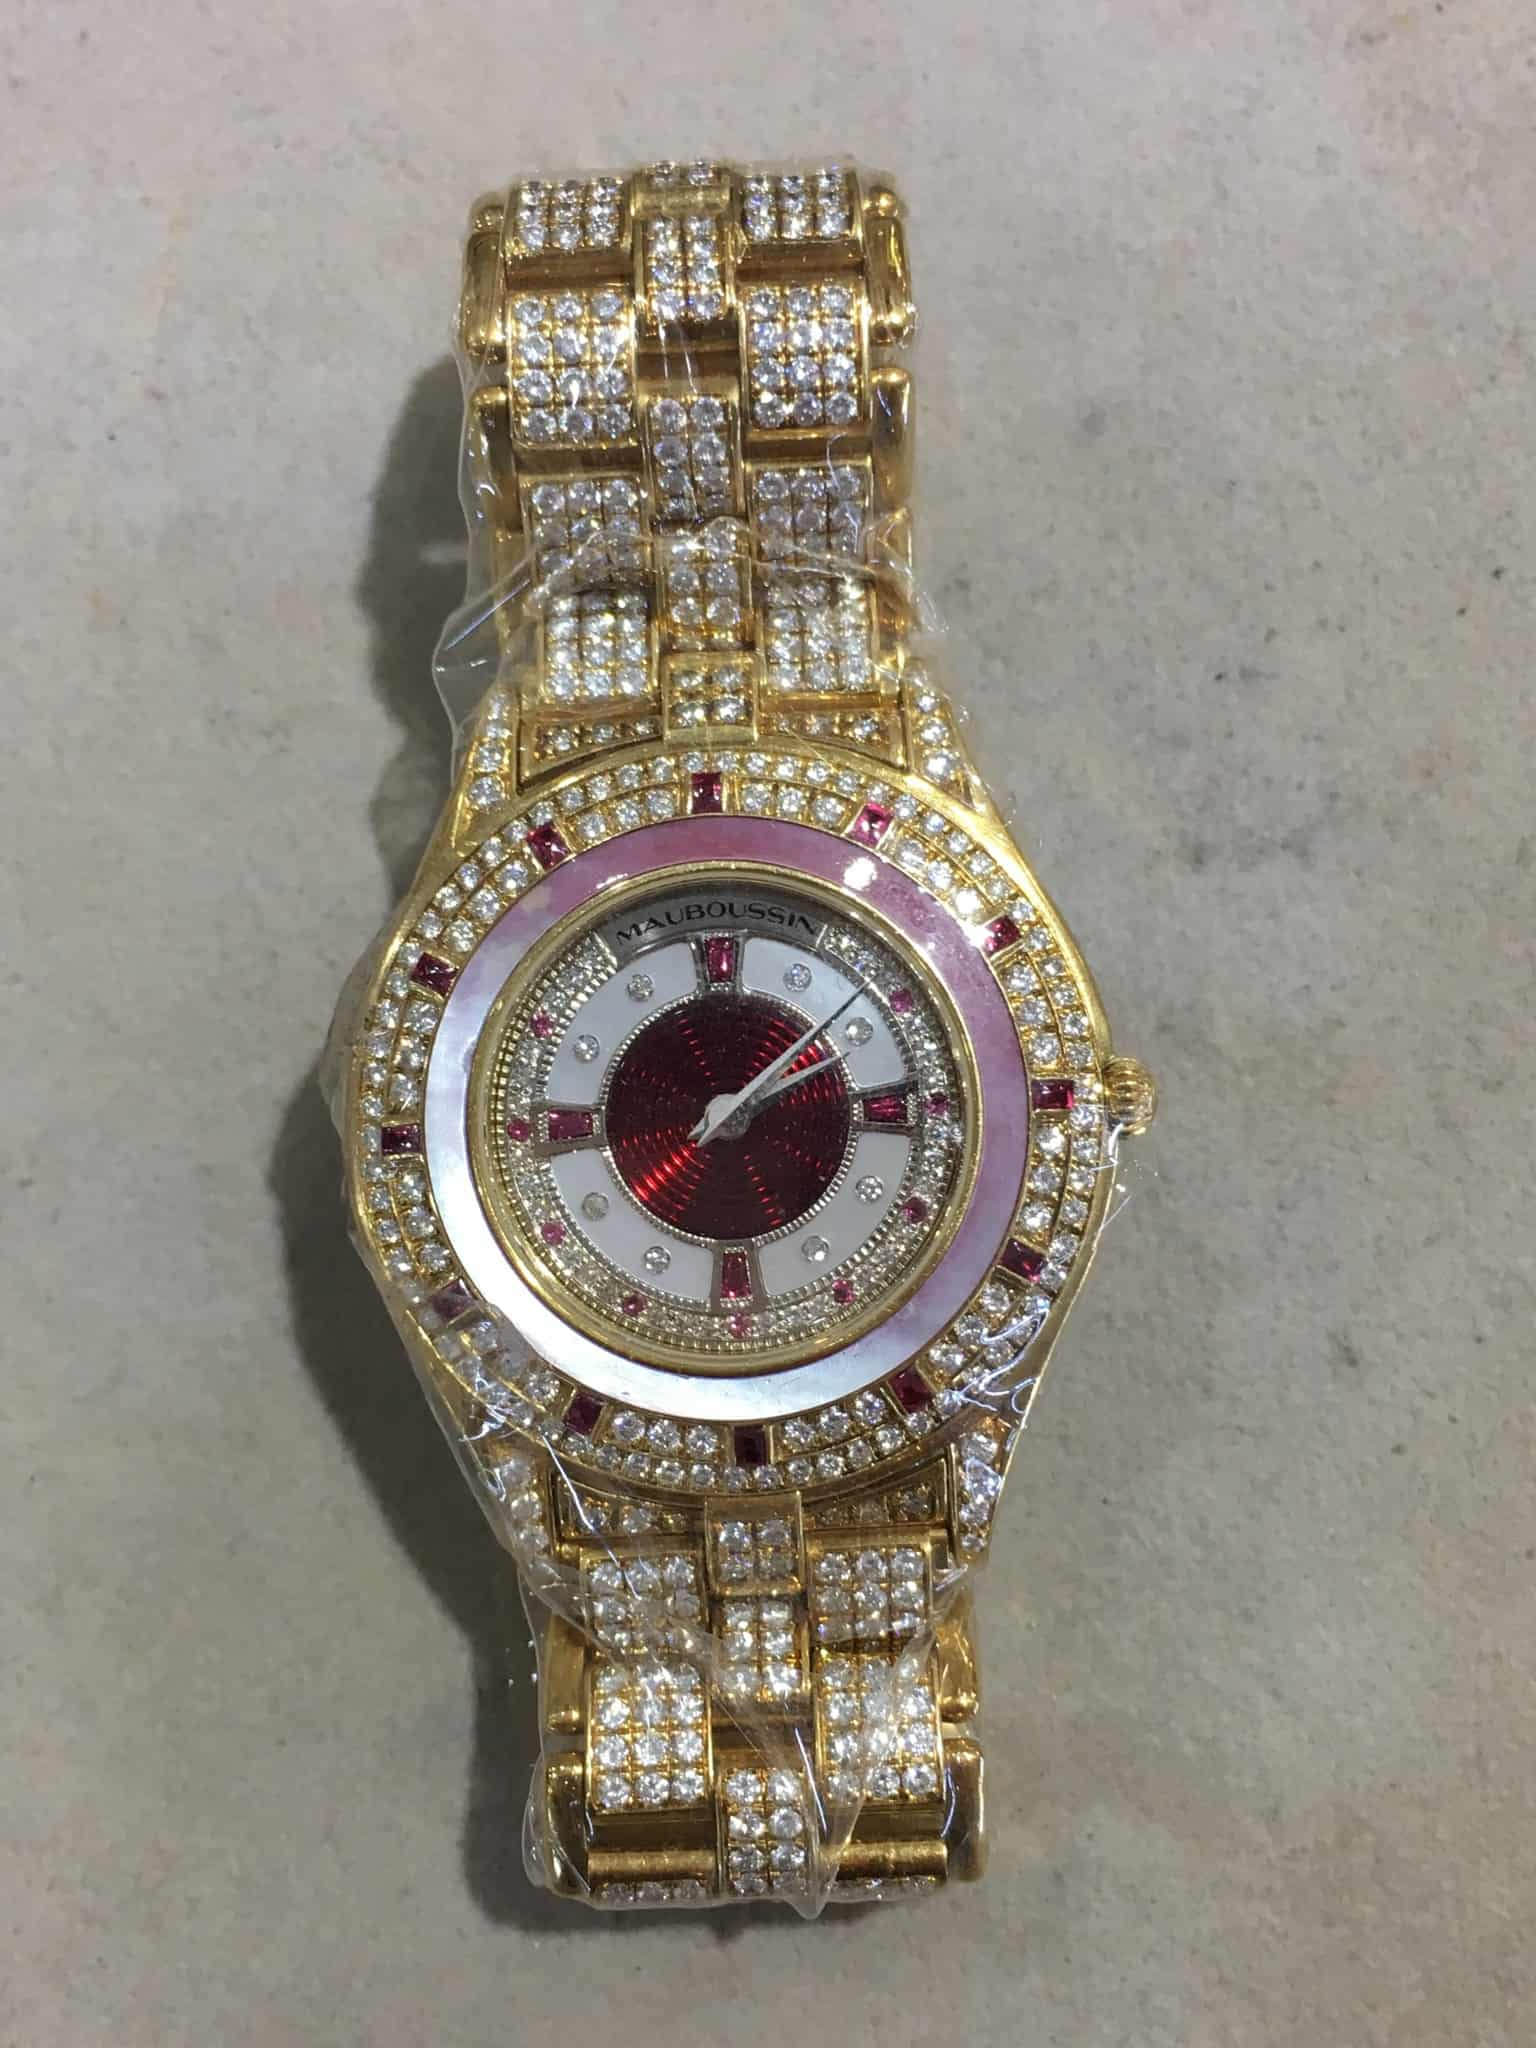 Mauboussin Watches for Sale & Used Mauboussin Watches